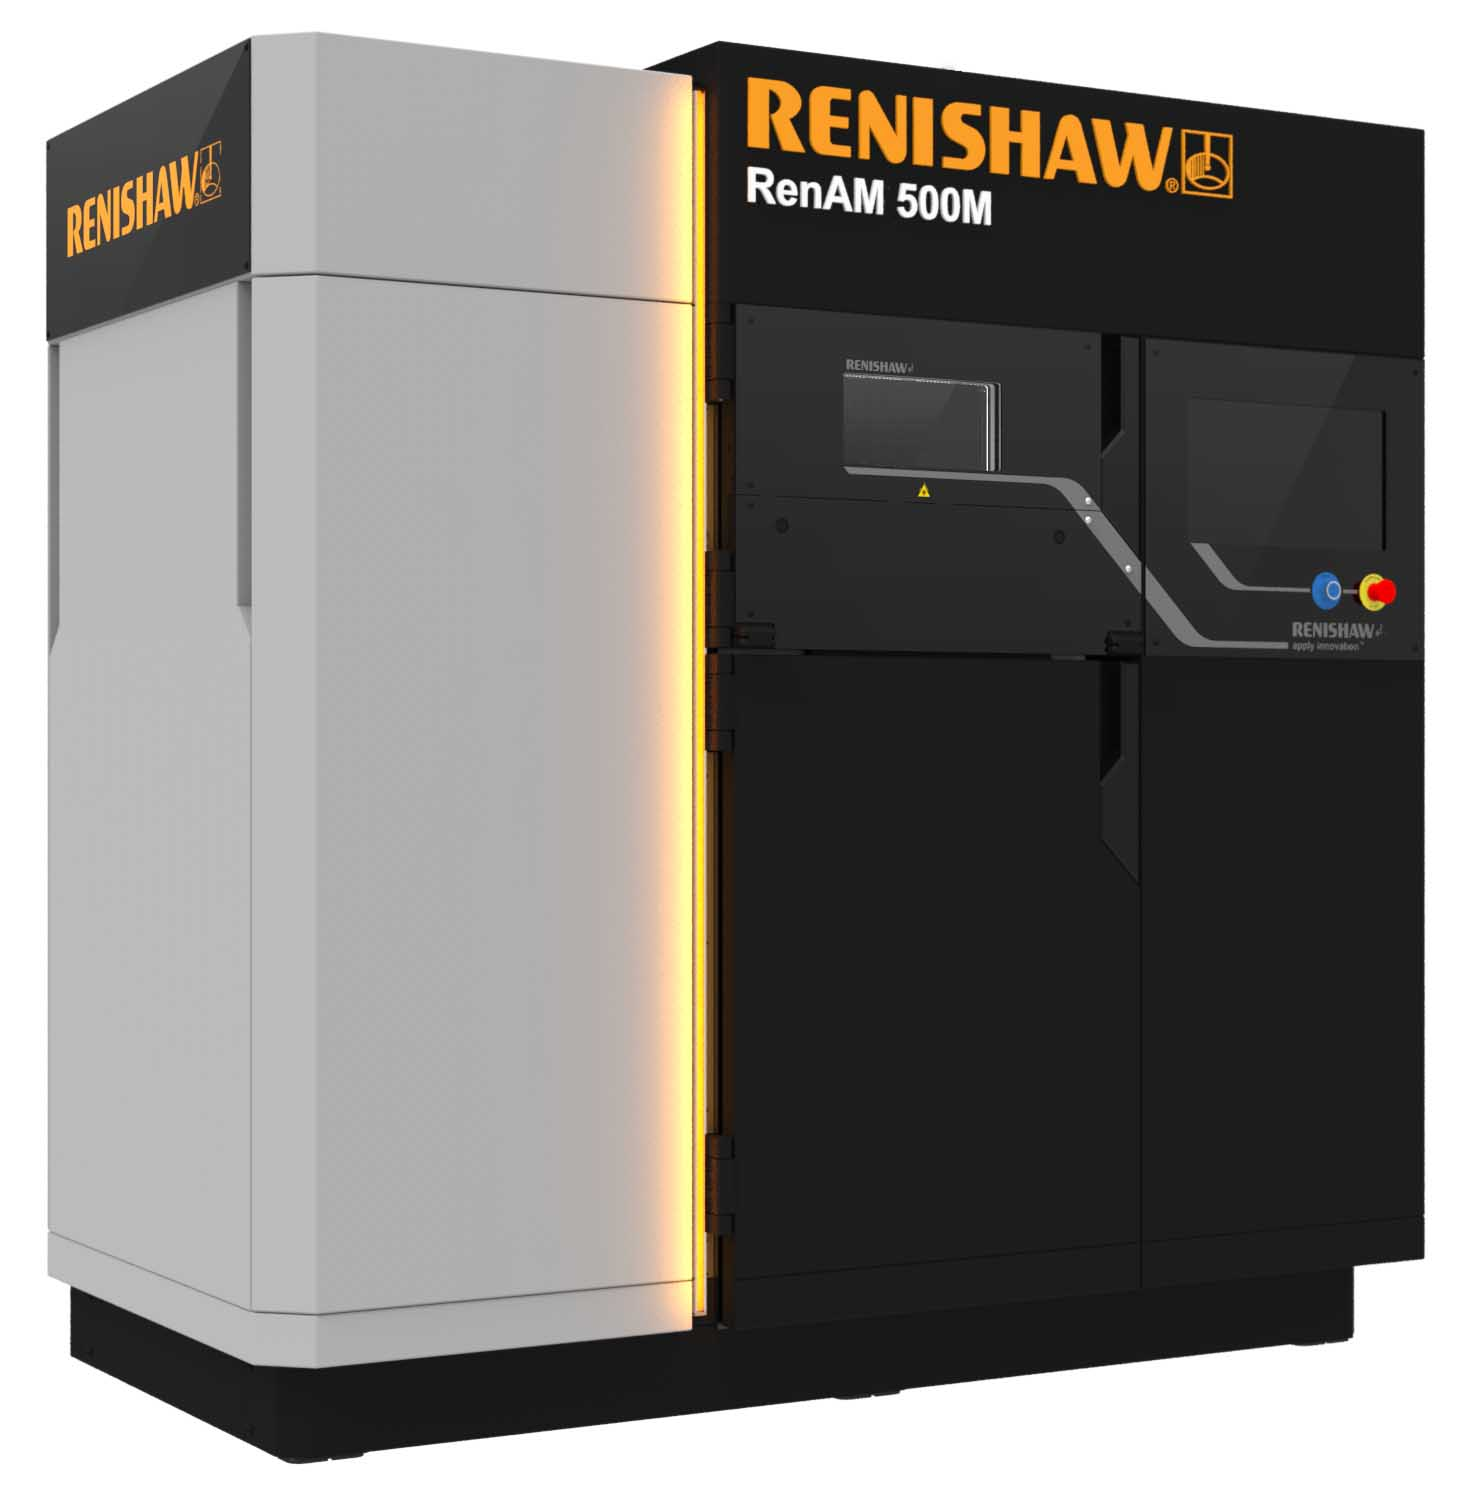 Renishaw machine